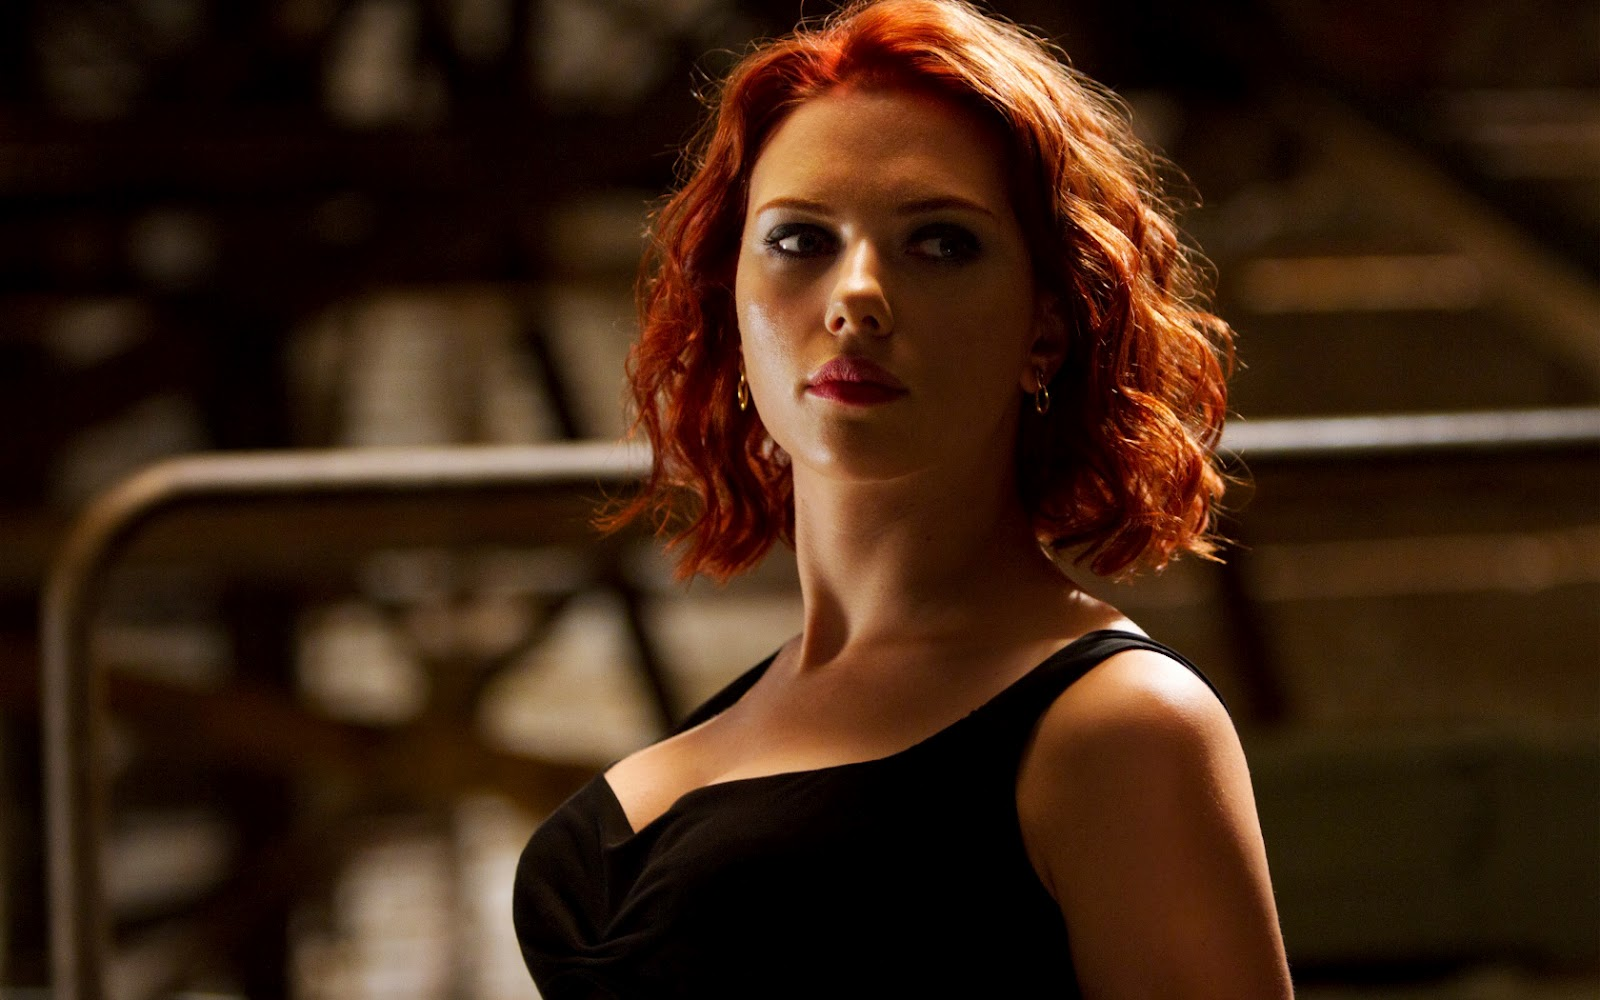 Scarlett Johansson as Black Widow HD Wallpapers| HD ...